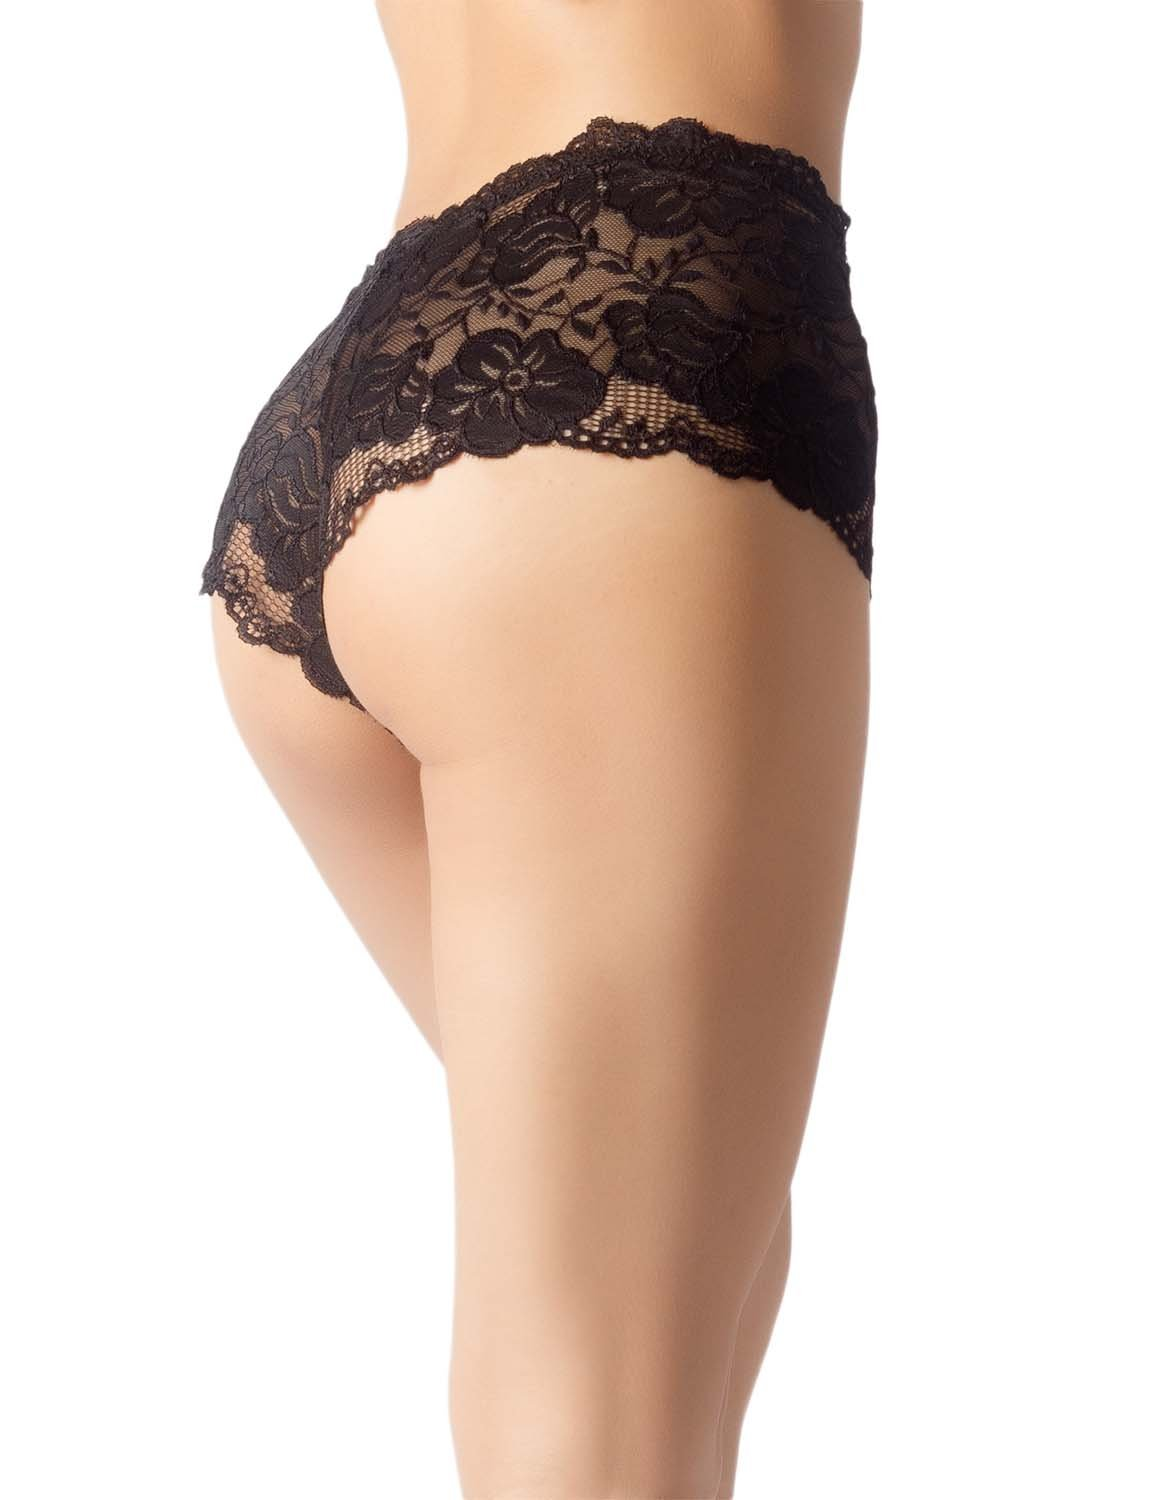 Women's Lace Mesh See-Through Breathable Underwear Low Rise Hipster Panty, Size: 2XL, Black